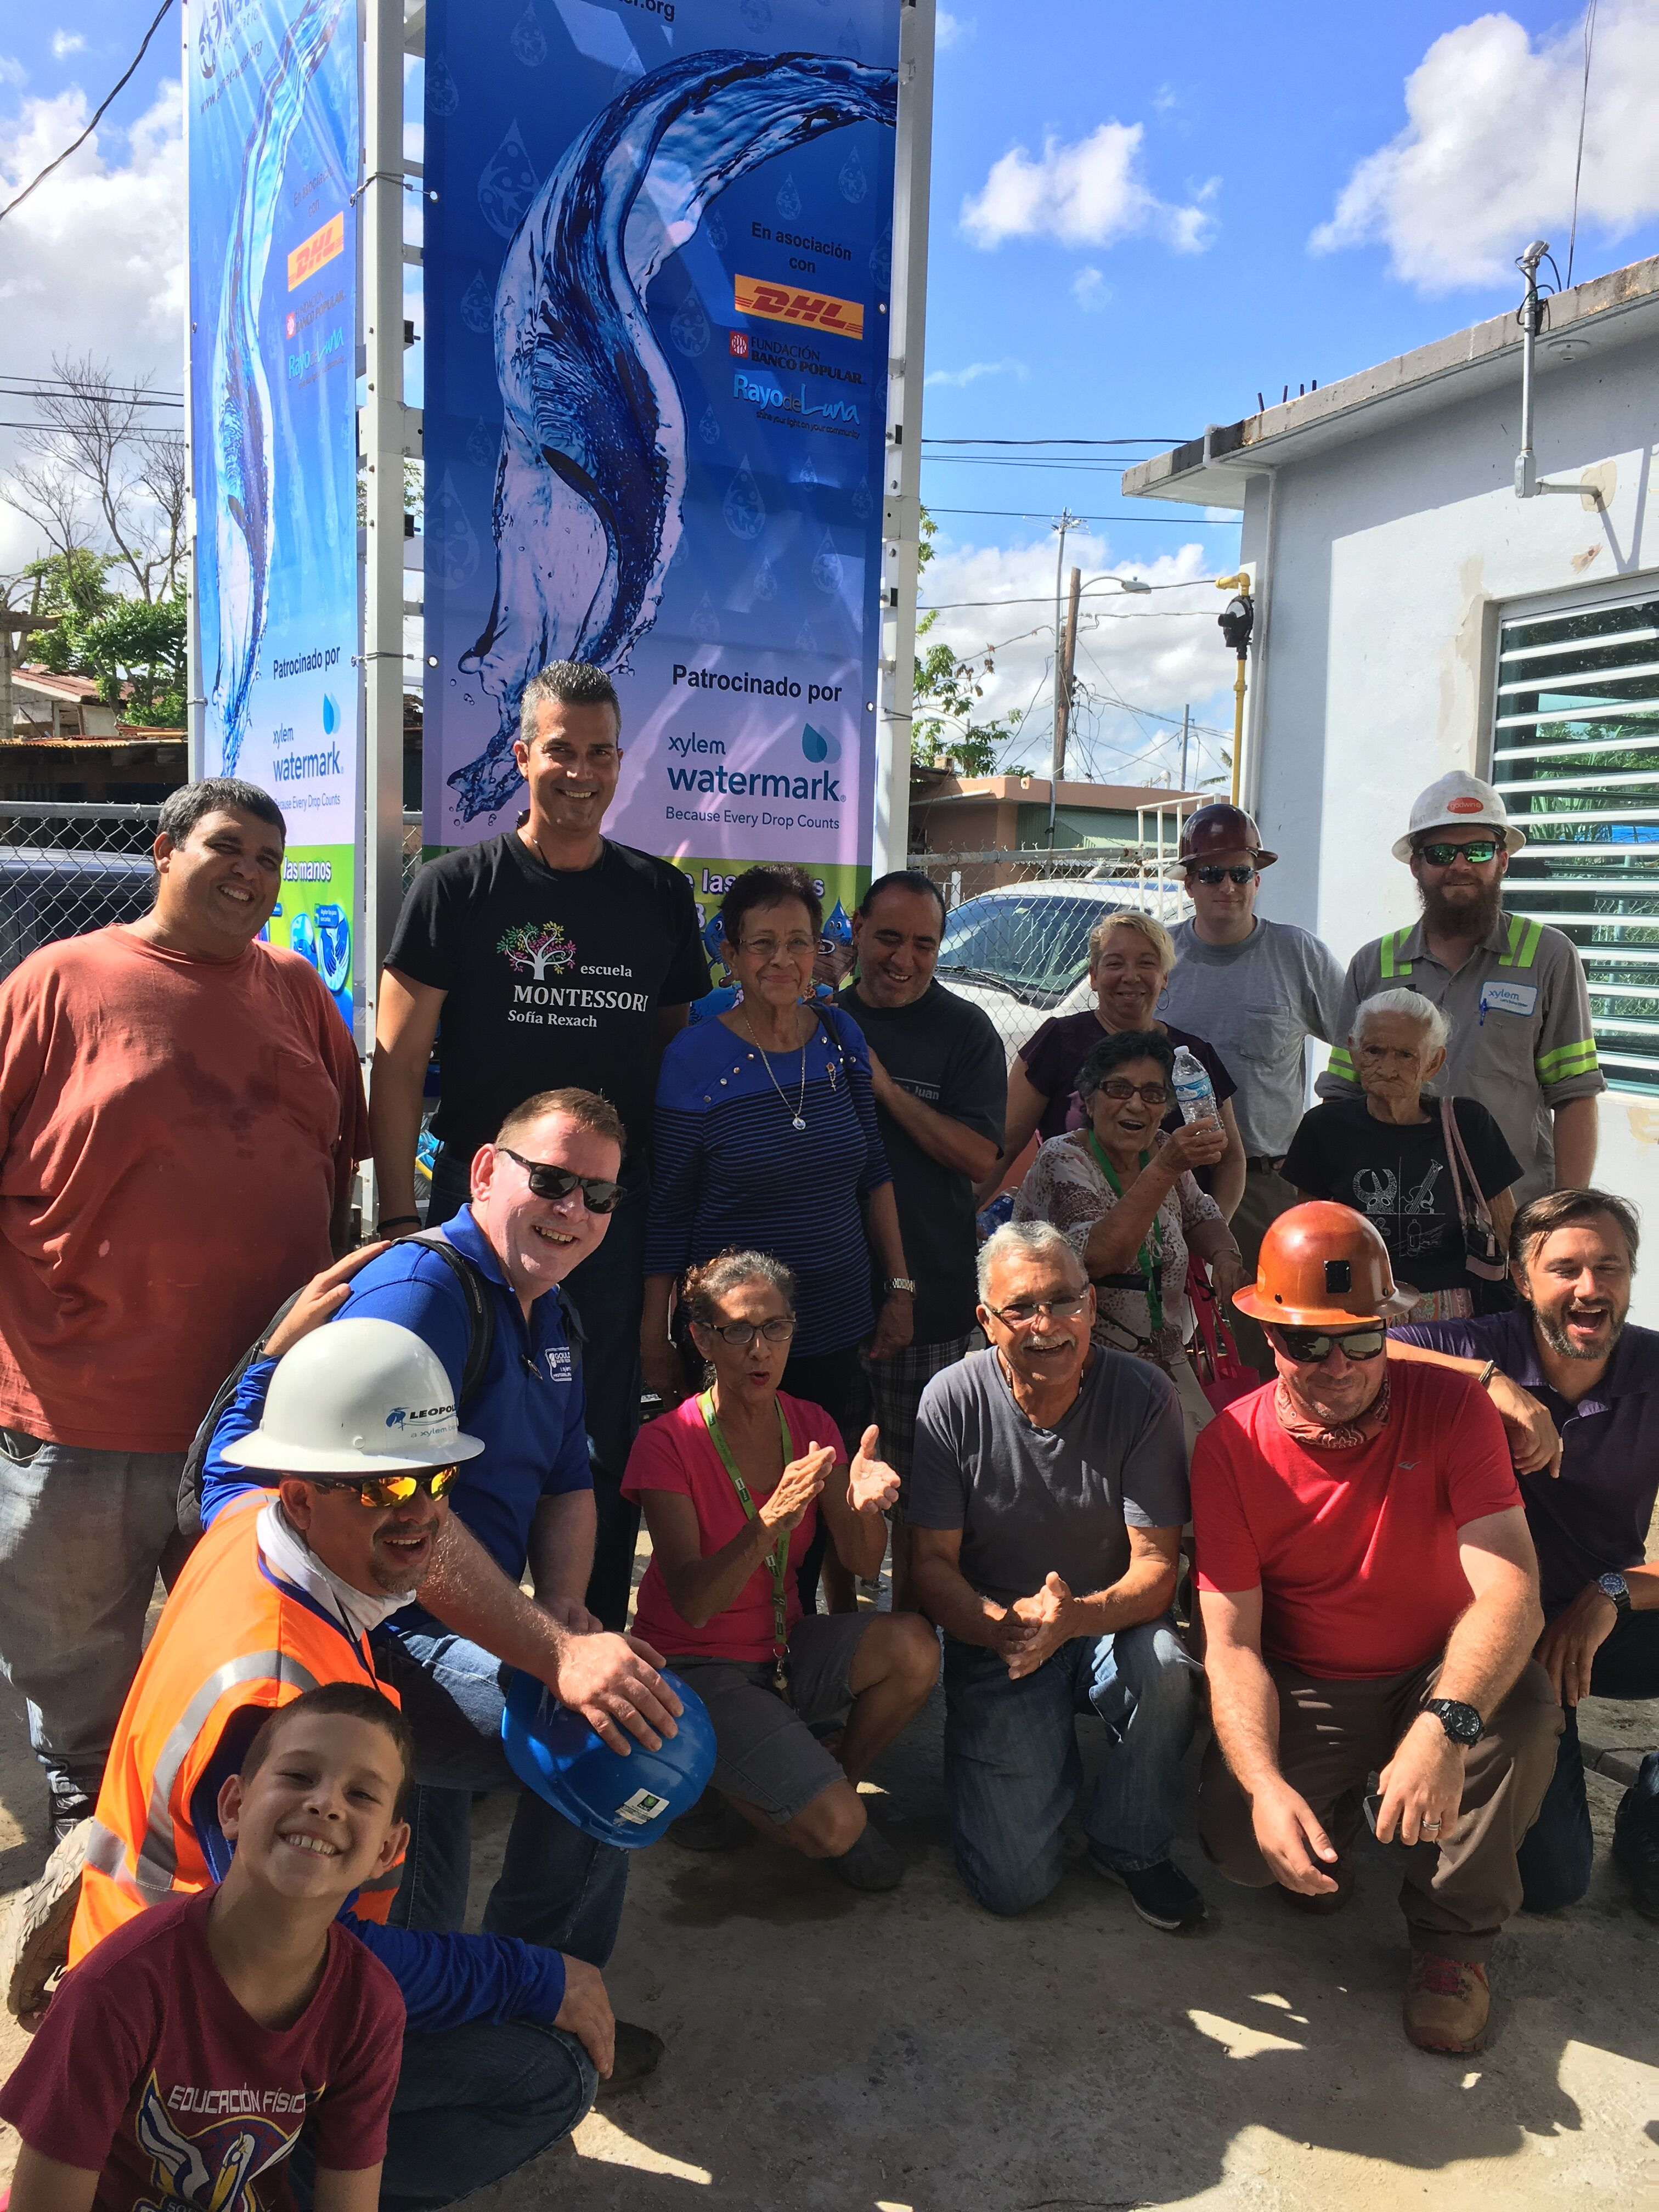 Team of Xylem employees volunteer their time to construct an AquaTower in Puerto Rico following Hurricane Maria. The AquaTower, supplied by Xylem's partner Planet Water Foundation, provides safe, clean water to more than 1,000 people per day